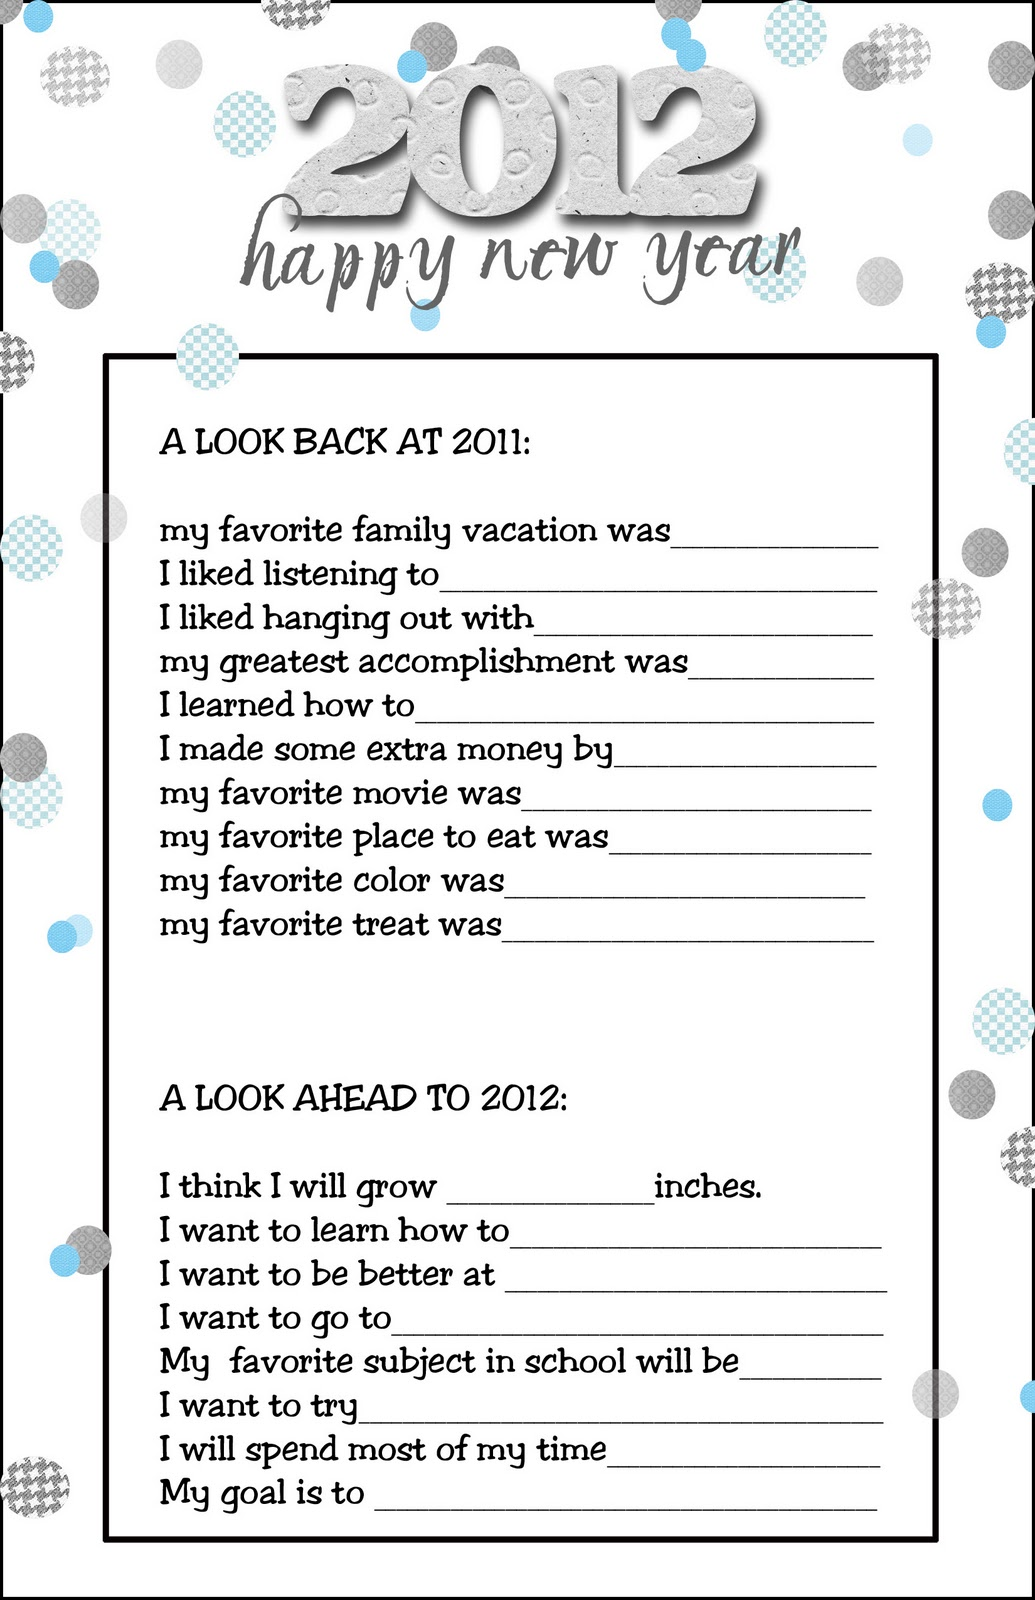 printable secret santa form secret santa gift exchange questionnaire ...